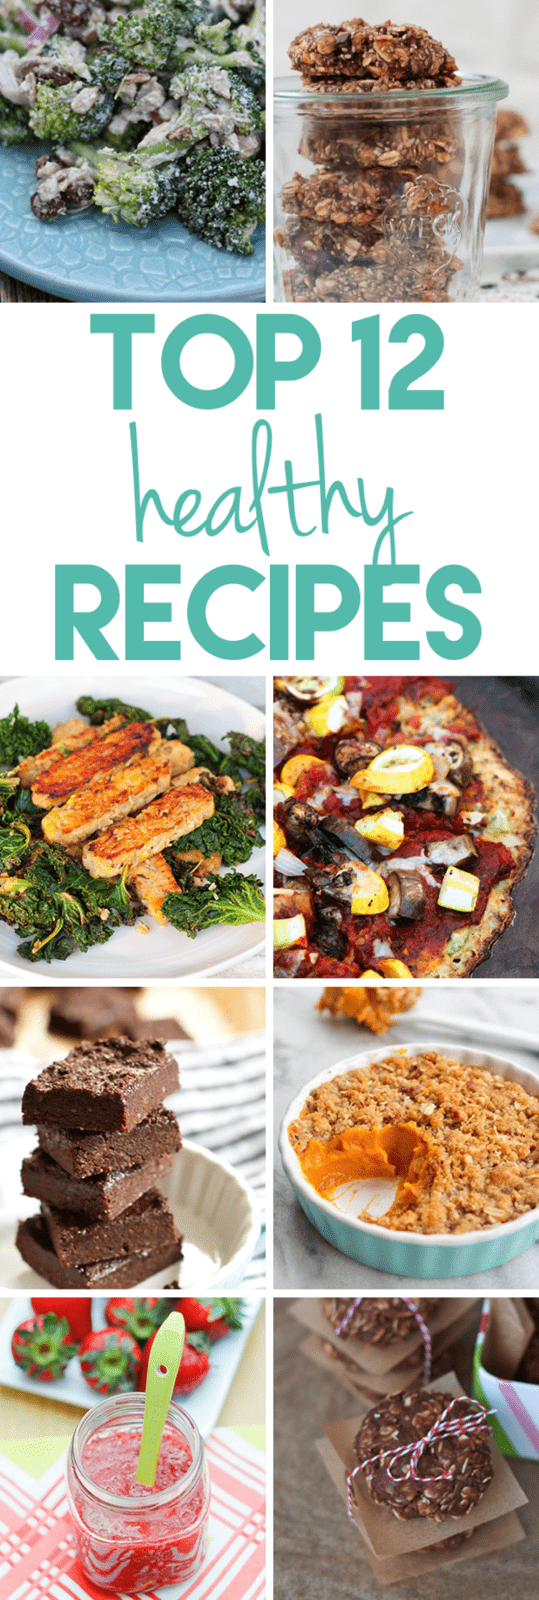 Top 12 Healthy Recipes